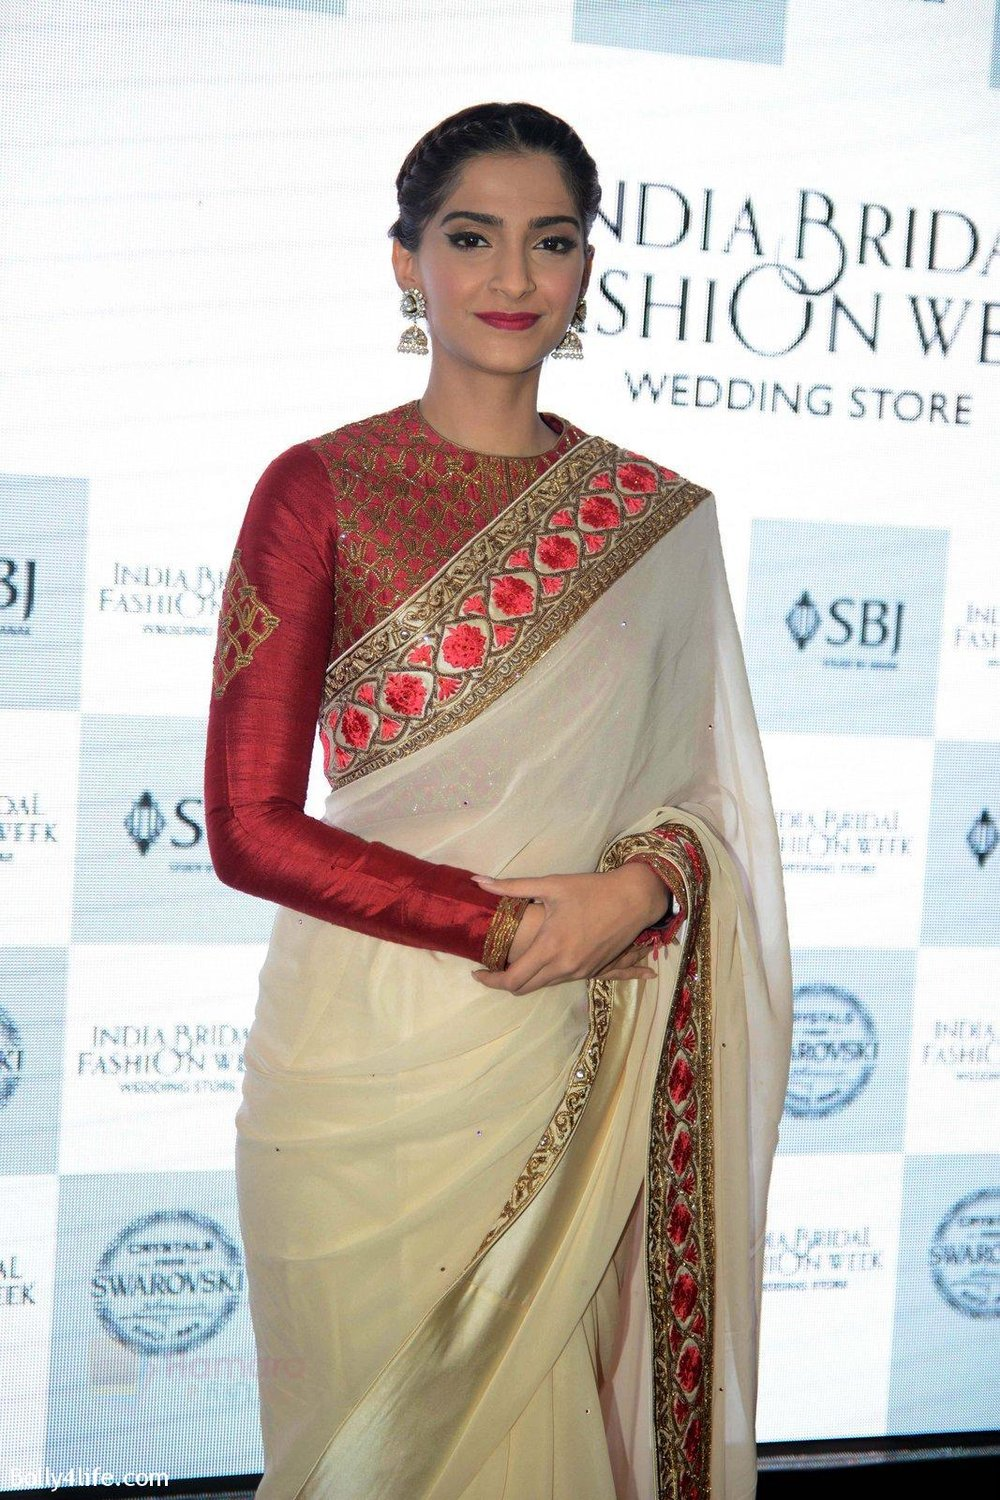 Sonam-Kapoor-during-the-launch-of-the-first-Indian-Bridal-Fashion-Week-Wedding-Store-in-New-Delhi-on-9th-Sept-2016-27.jpg